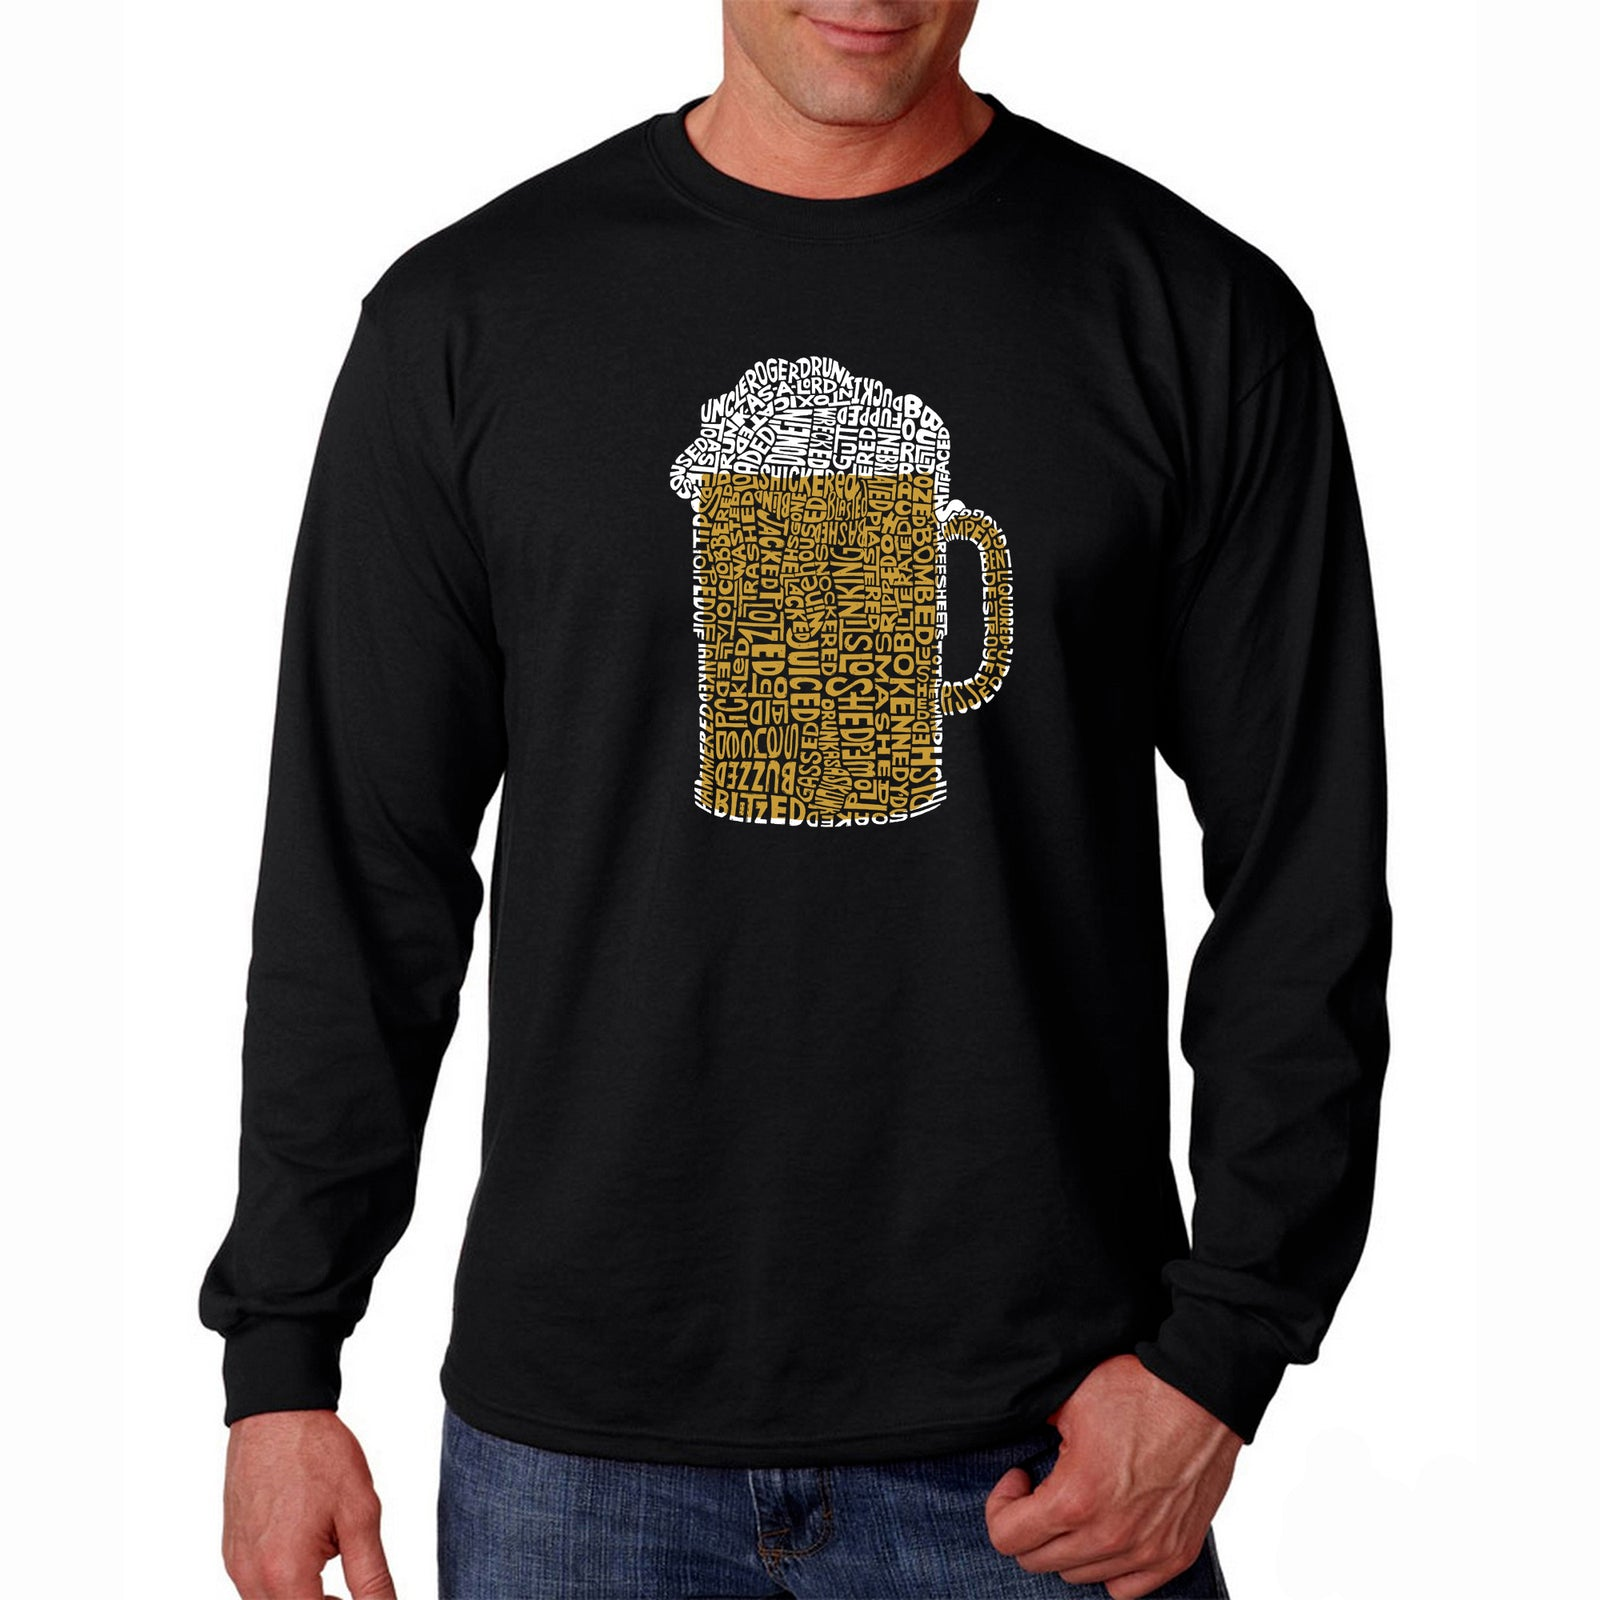 Men's Long Sleeve T-shirt - Slang Terms for Being Wasted